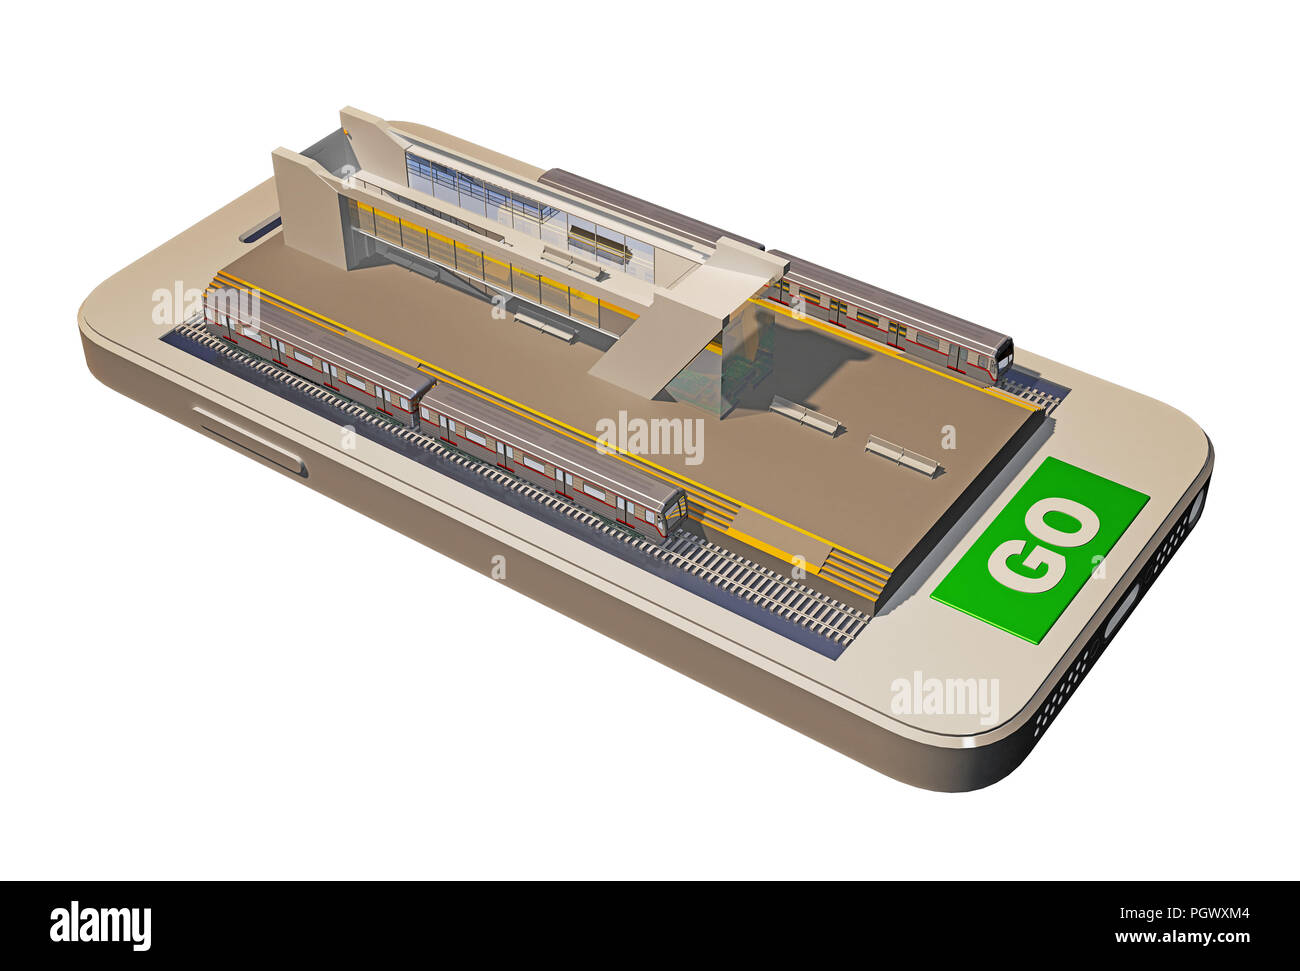 Metro station on the mobile phone screen. 3d rendering - Stock Image